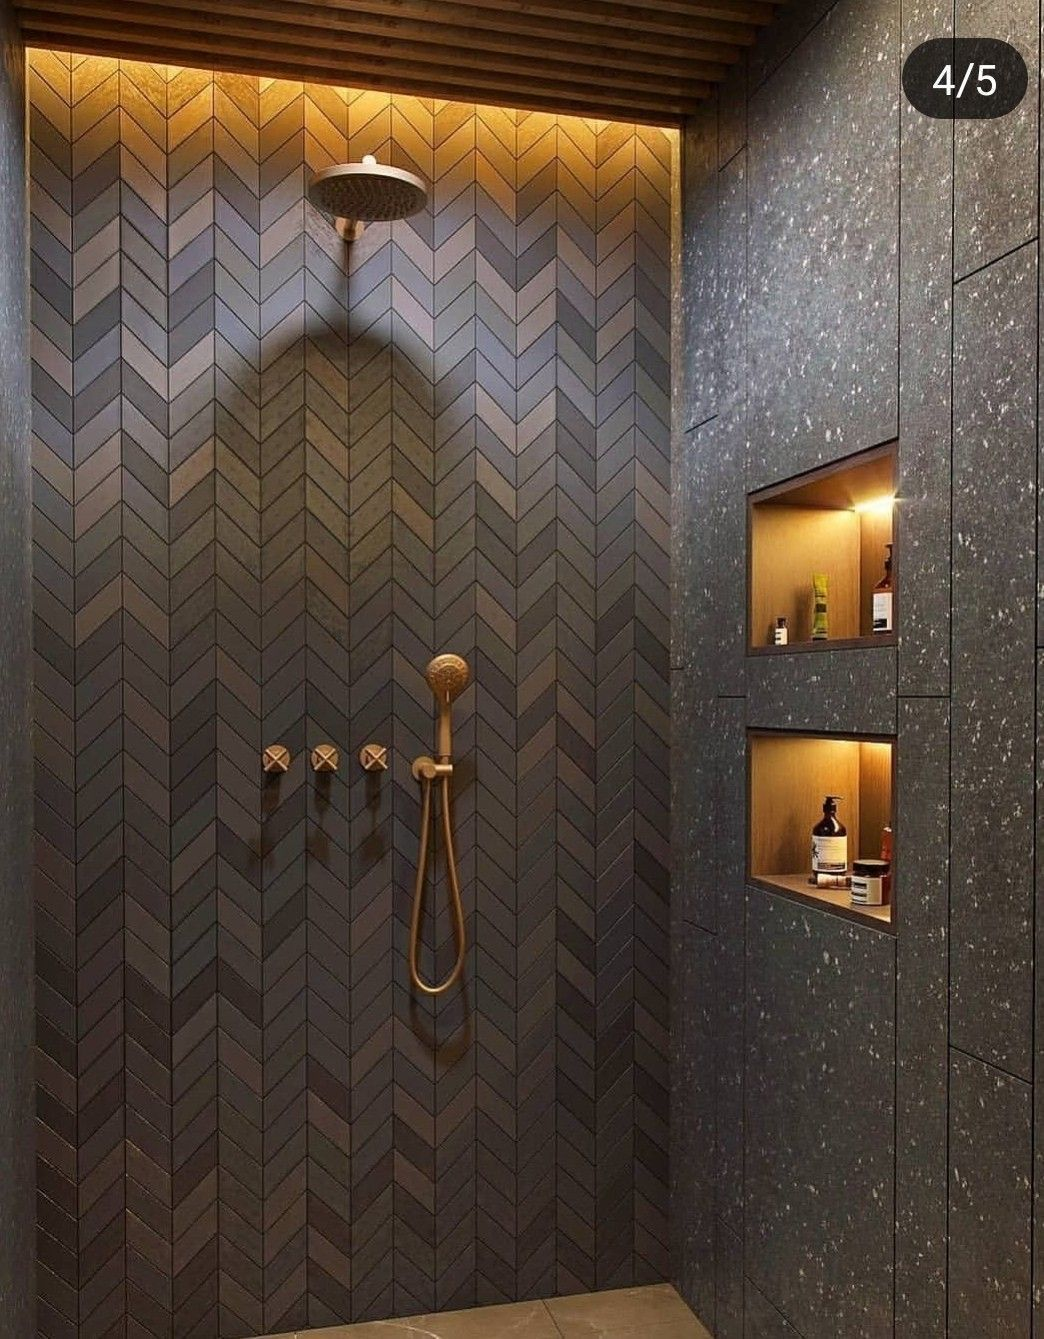 Modern Bathroom Design Ideas Every Bathroom Remodel Begins With A Style Suggestion Fro Modern Bathroom Design Bathroom Design Luxury Bathroom Interior Design